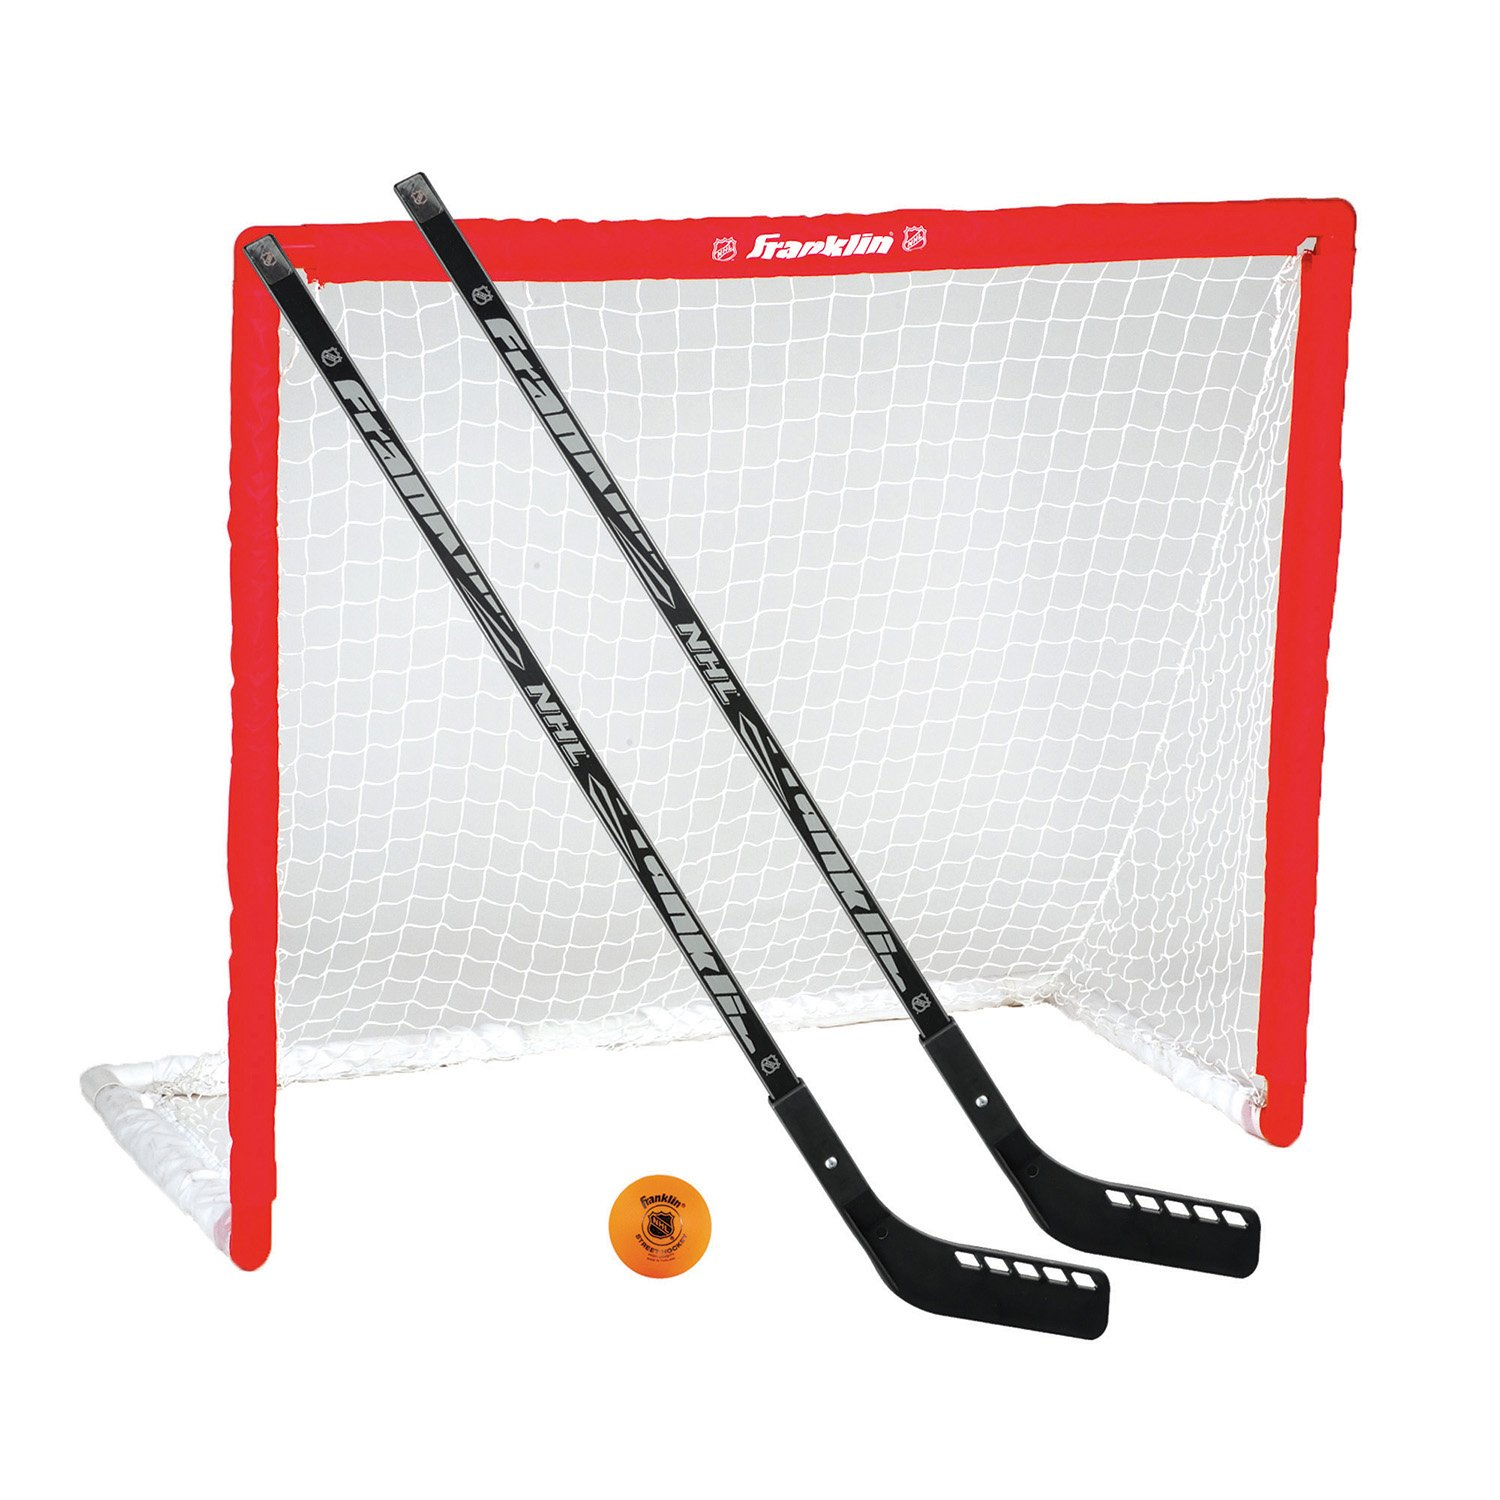 Franklin Sports Hockey Goal, Ball, and Stick Set - NHL